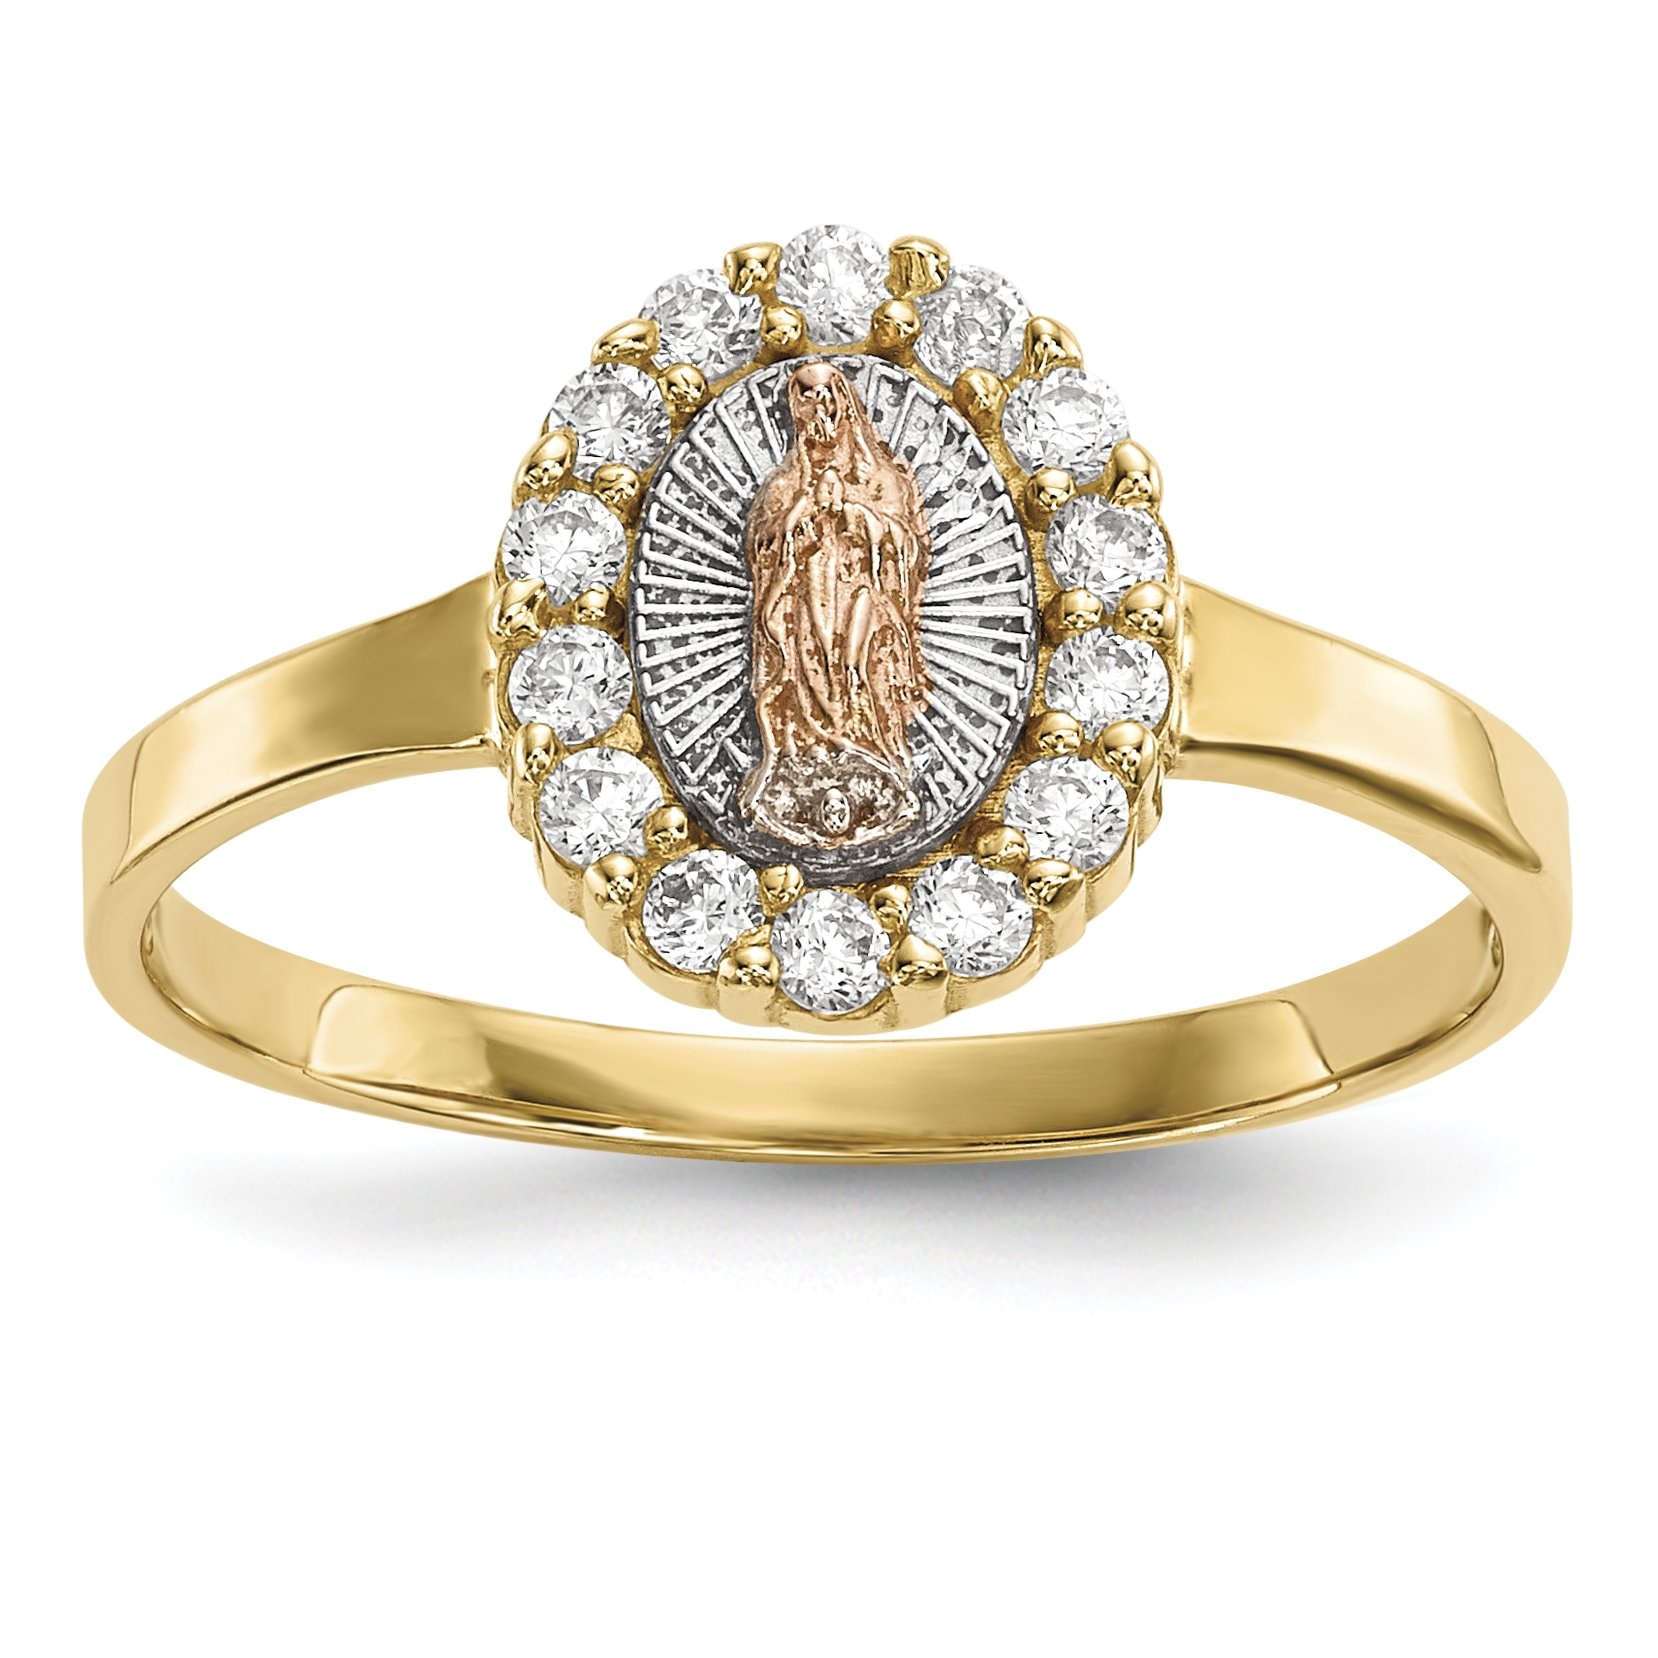 ICE CARATS 14k Two Tone Yellow Gold White Cubic Zirconia Cz Lady Of Guadalupe Band Ring Size 7.00 Religious Fine Jewelry Gift Set For Women Heart